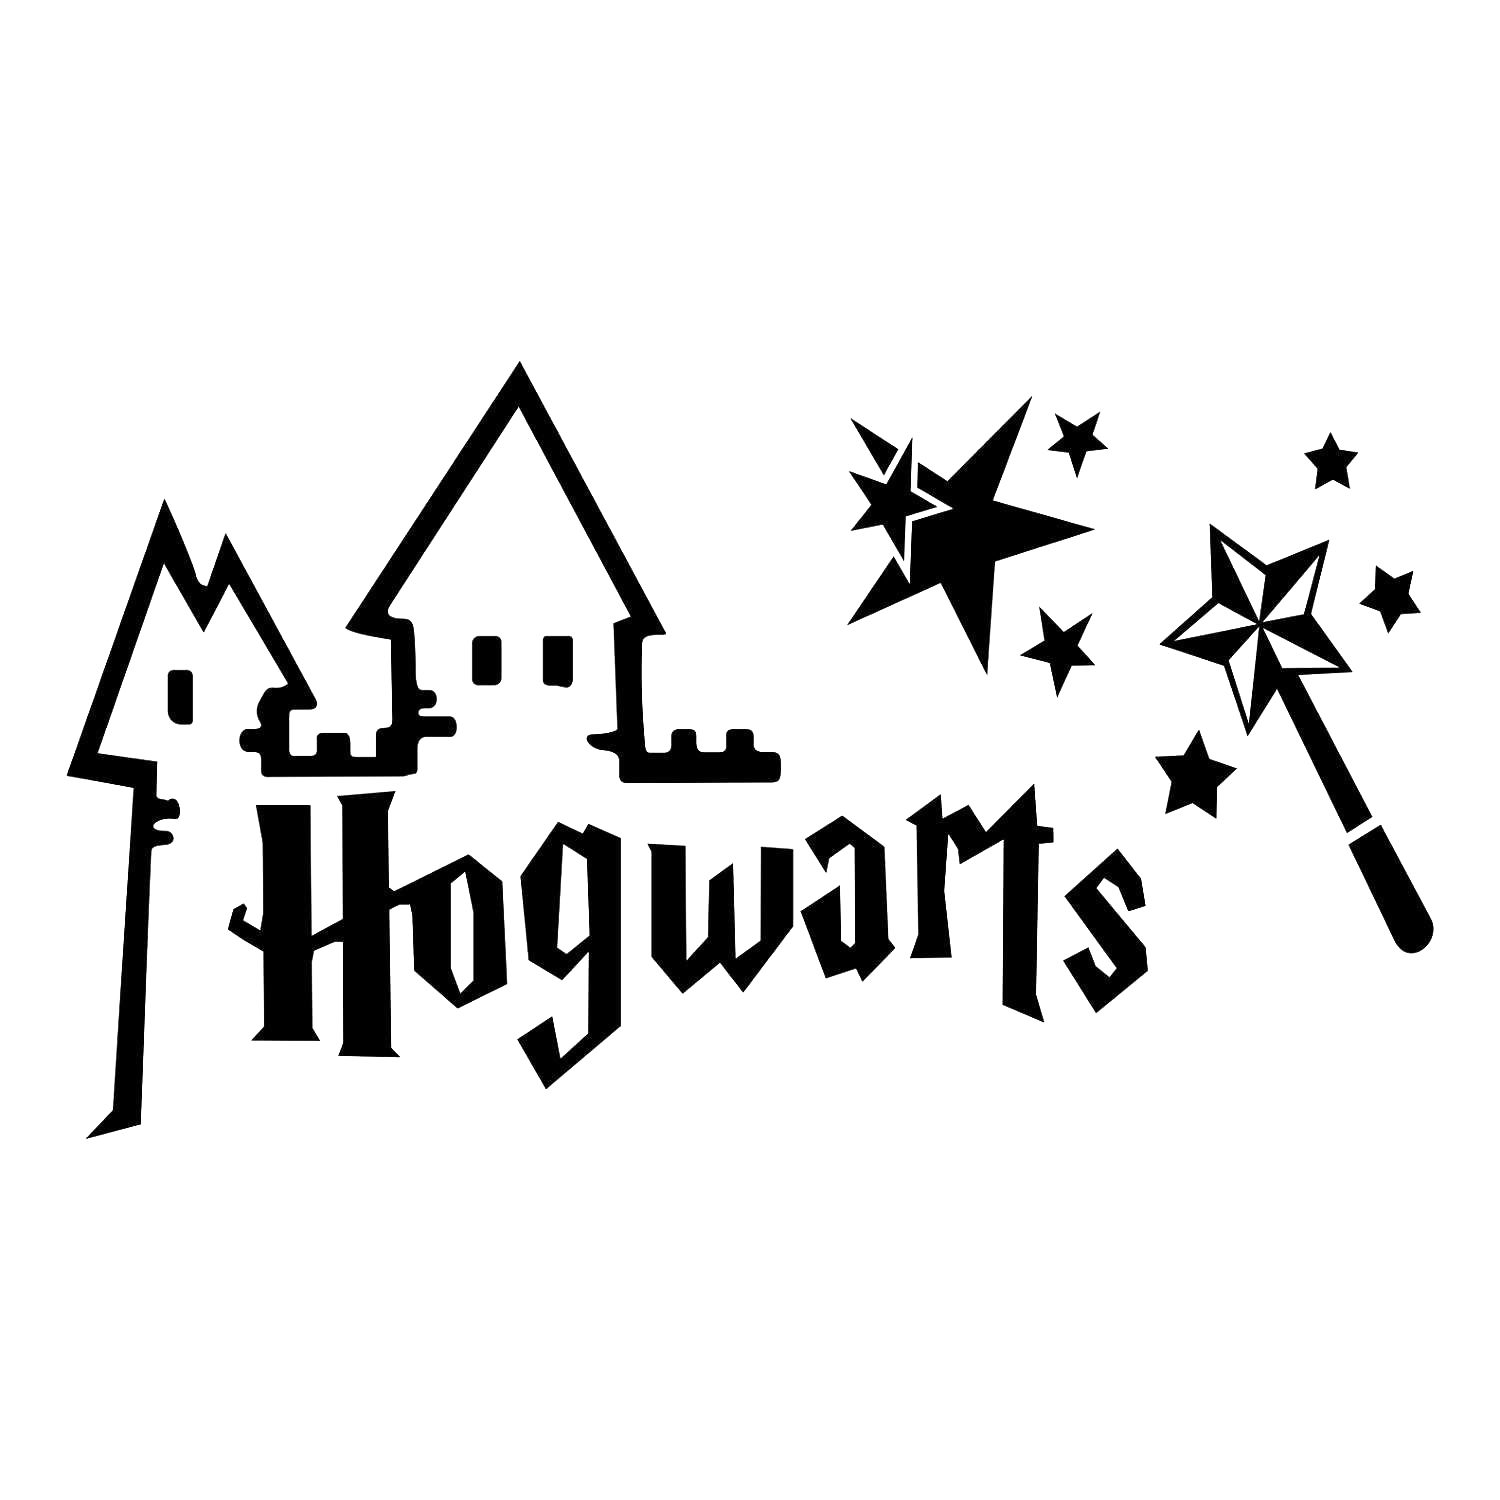 Harry Potter and the Deathly Hallows Hogwarts School of.